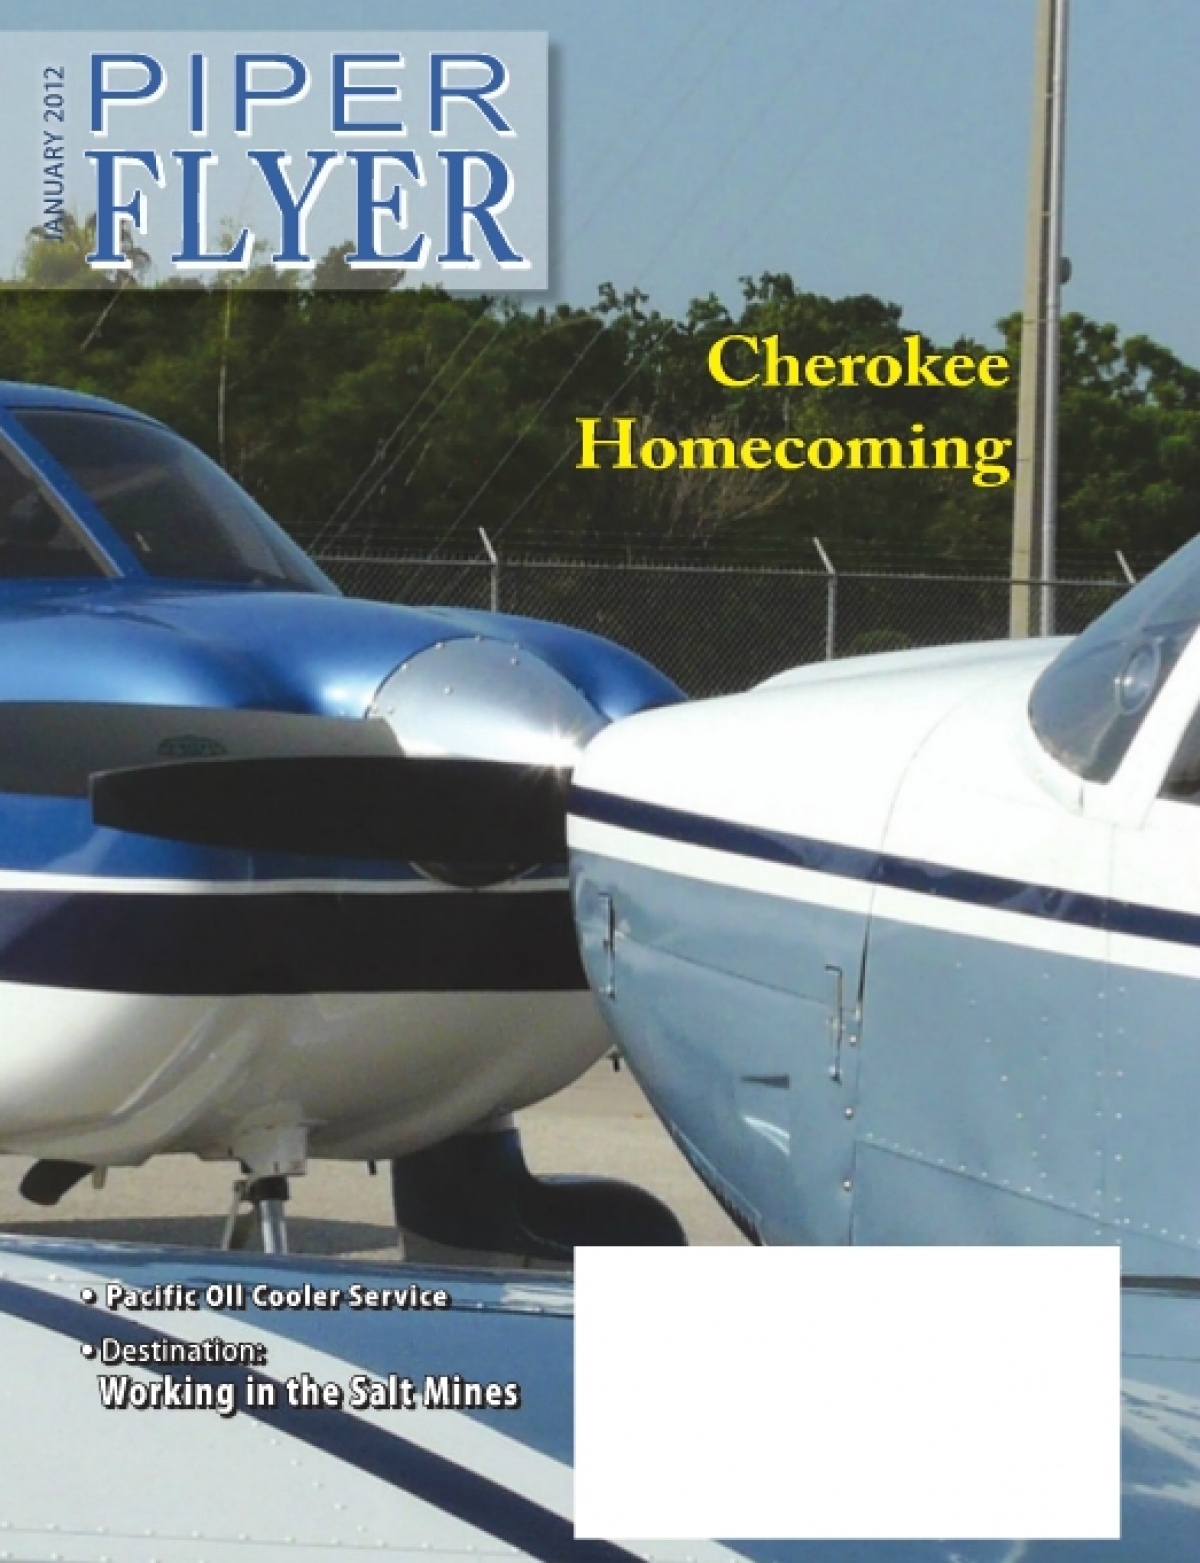 January 2012 Piper Flyer magazine